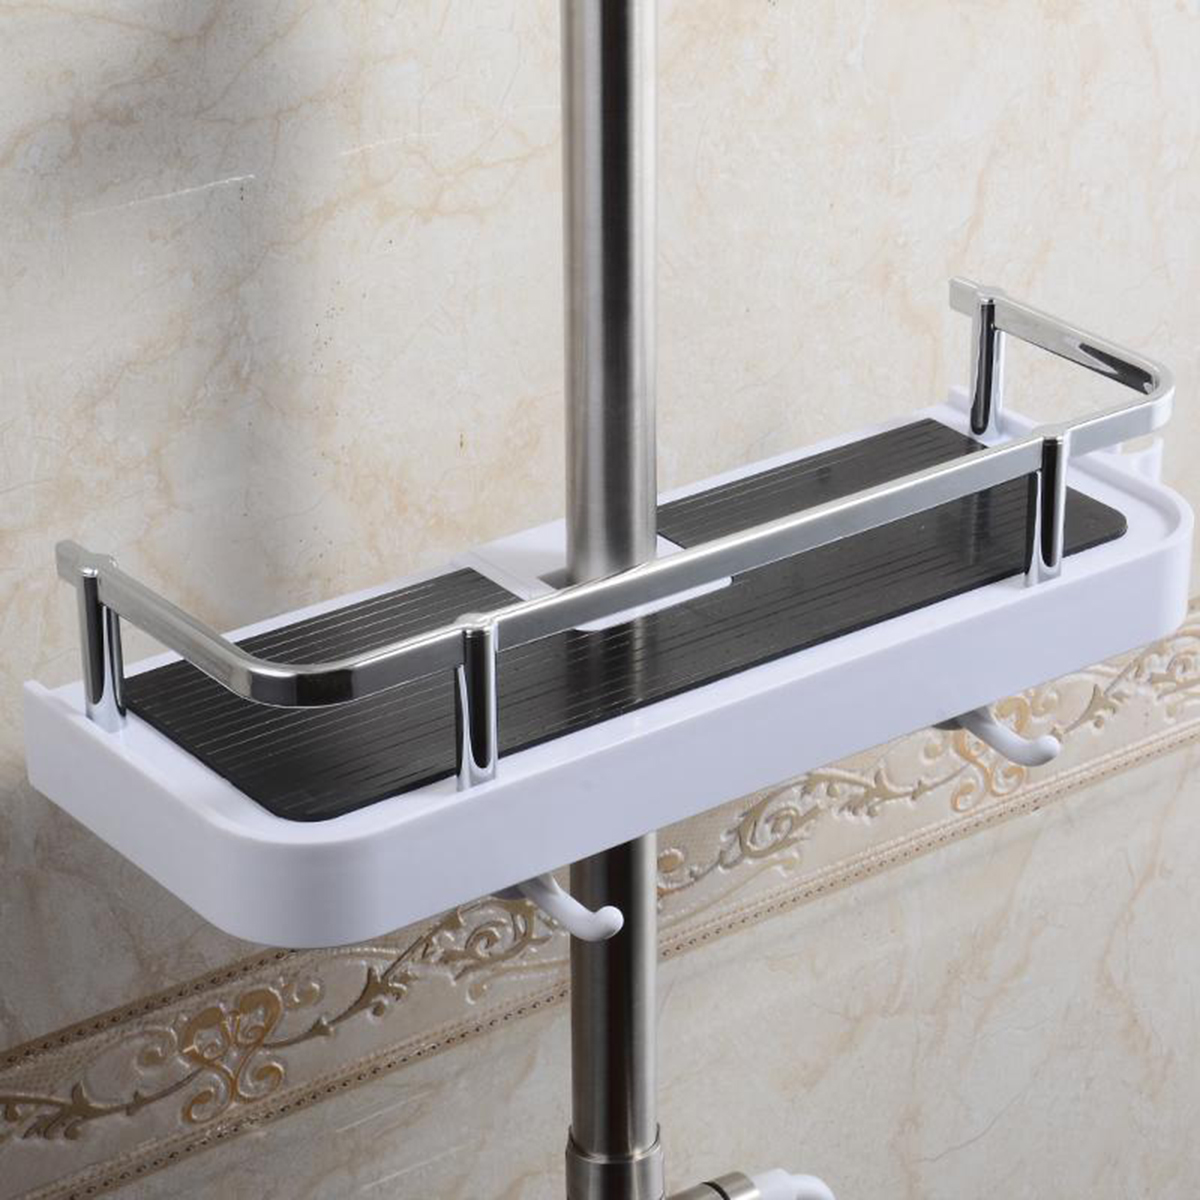 Bathroom Pole Shelf Shower Storage Caddy Rack Organiser Tray Holder Drain Shelf